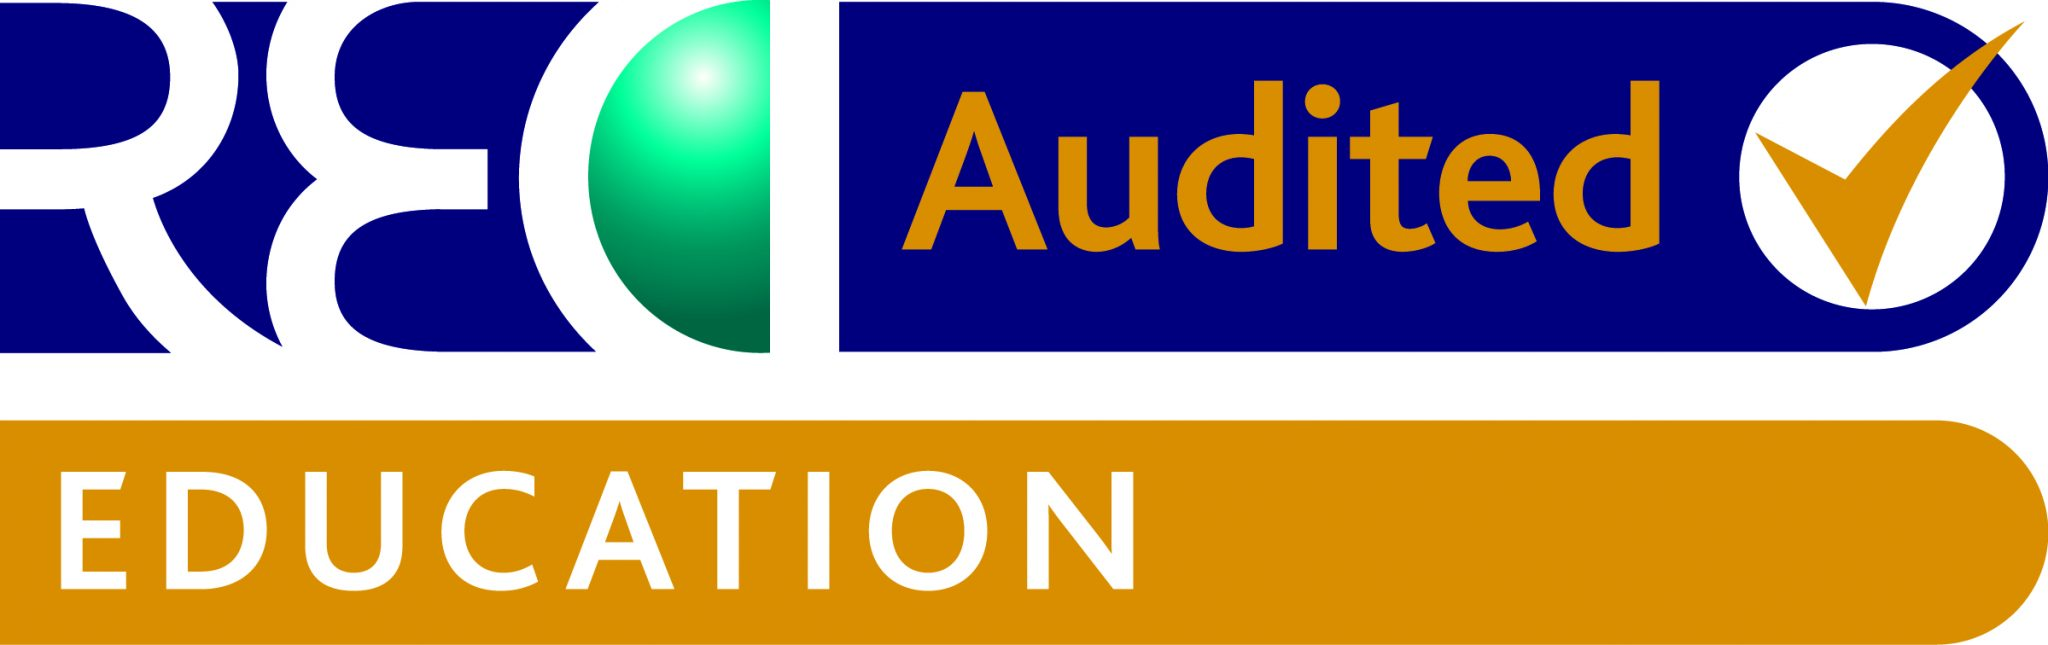 REC Audited Education Accredited